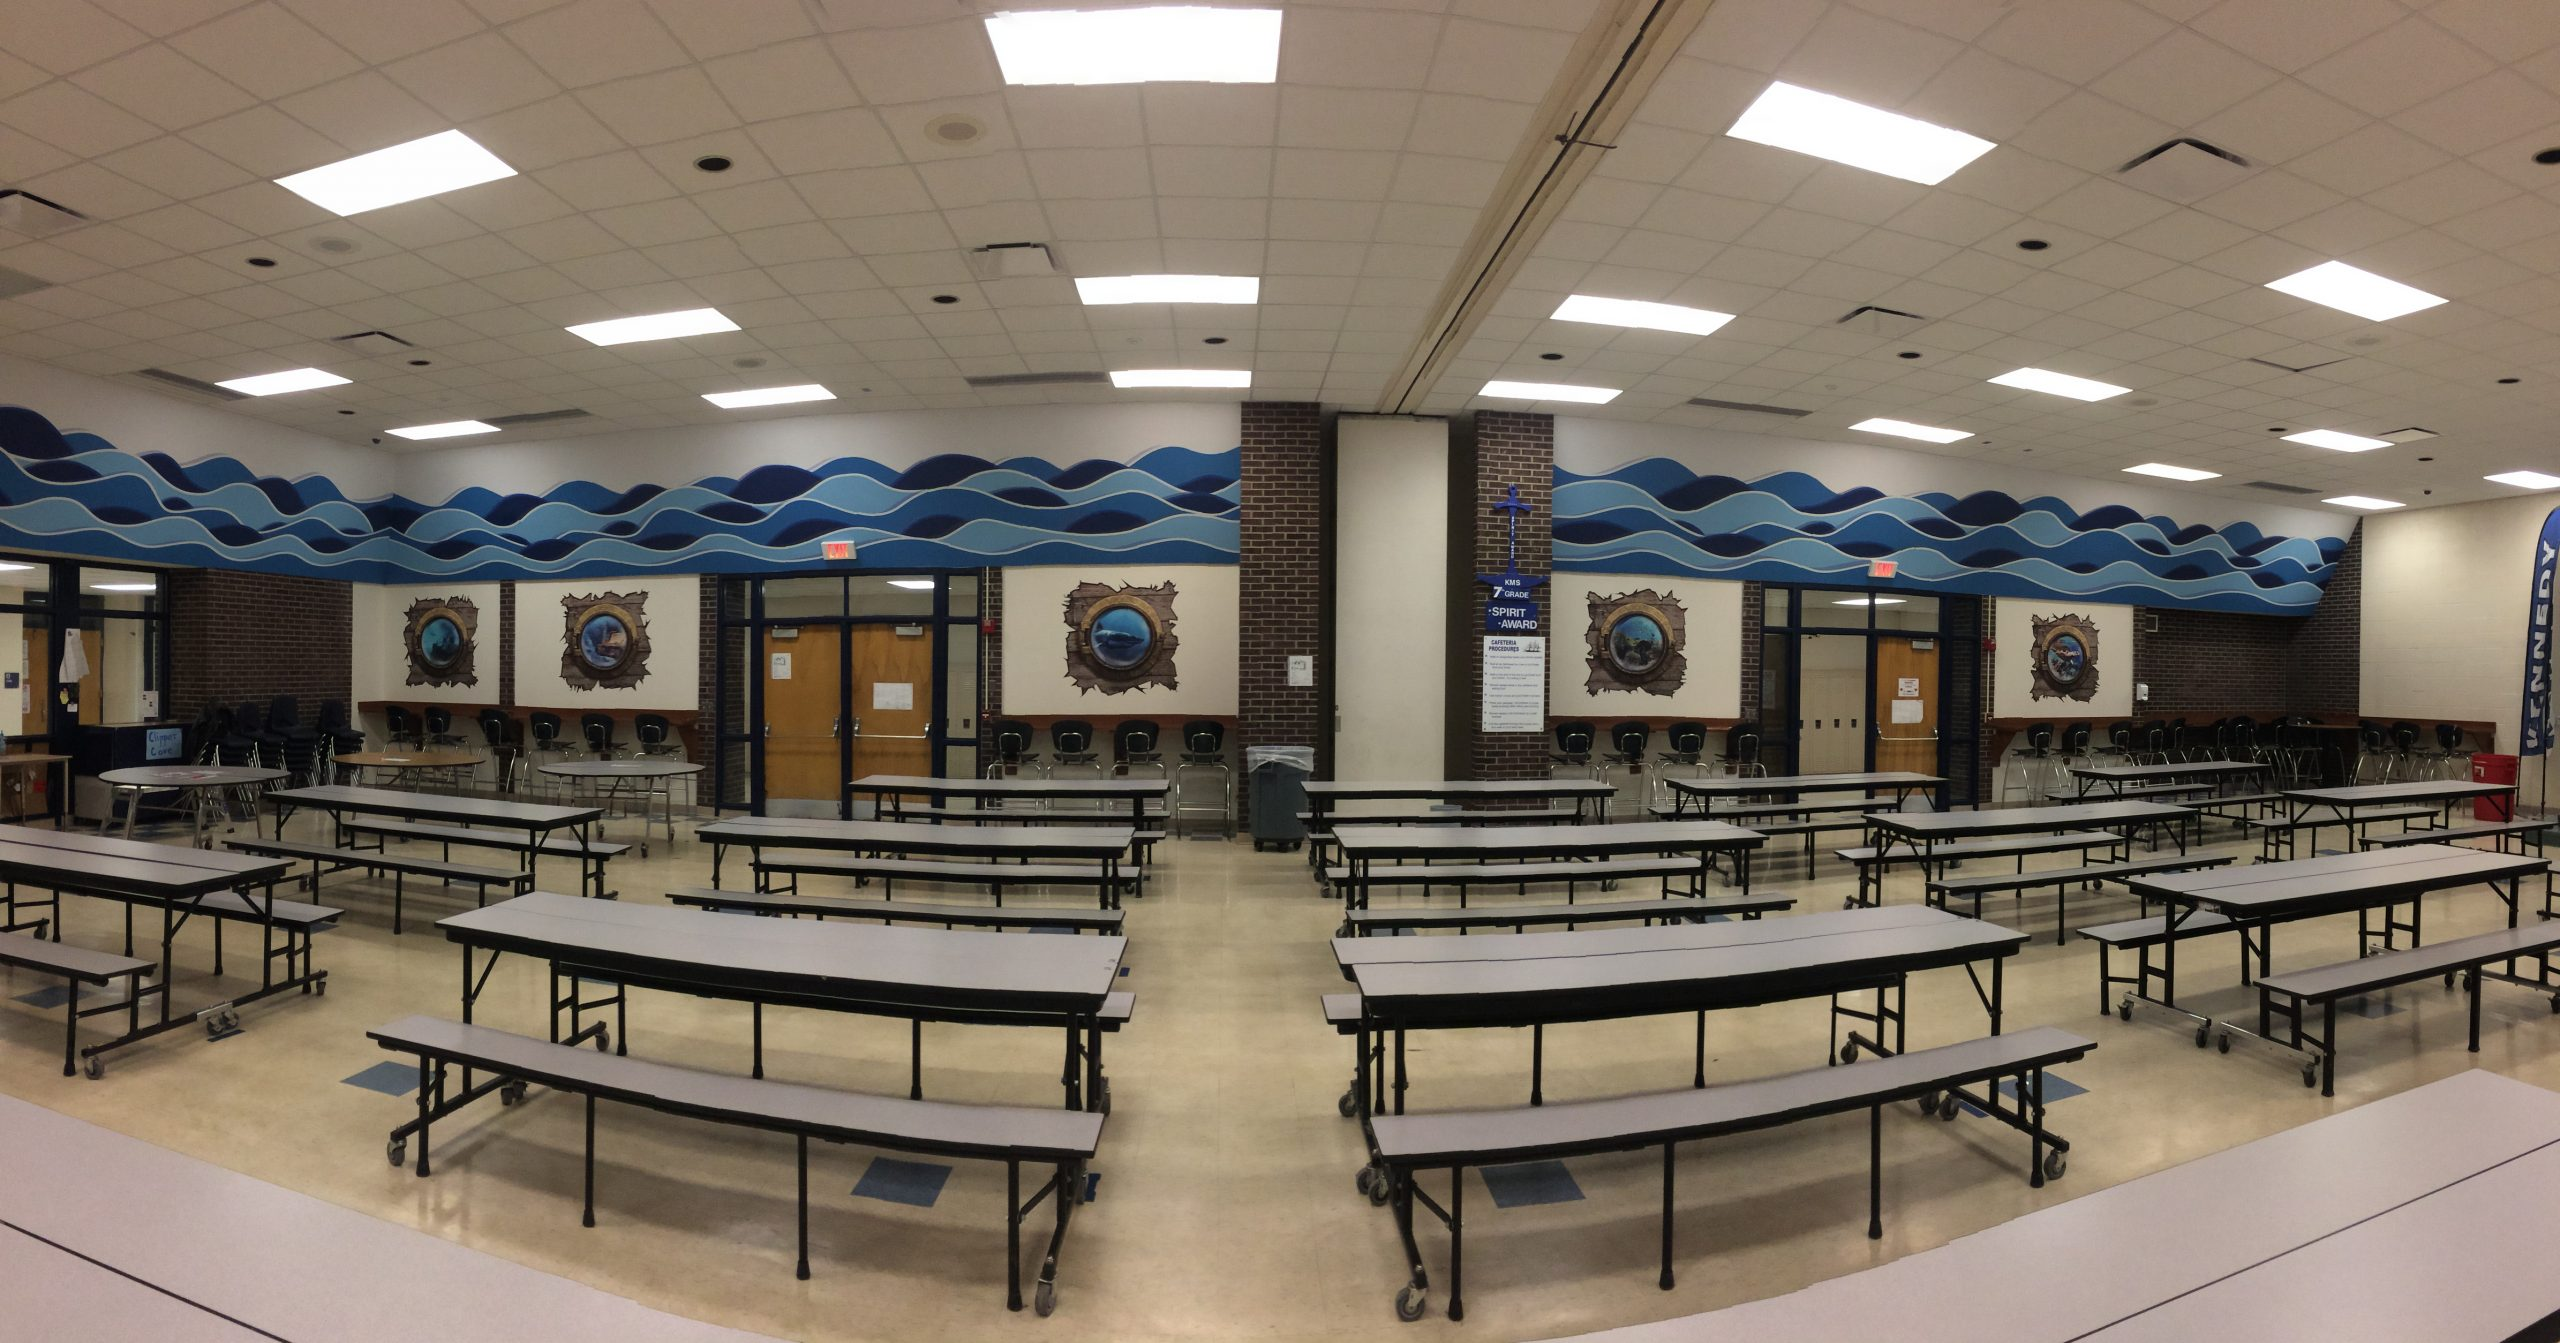 Kennedy Middle School Cafeteria - 00